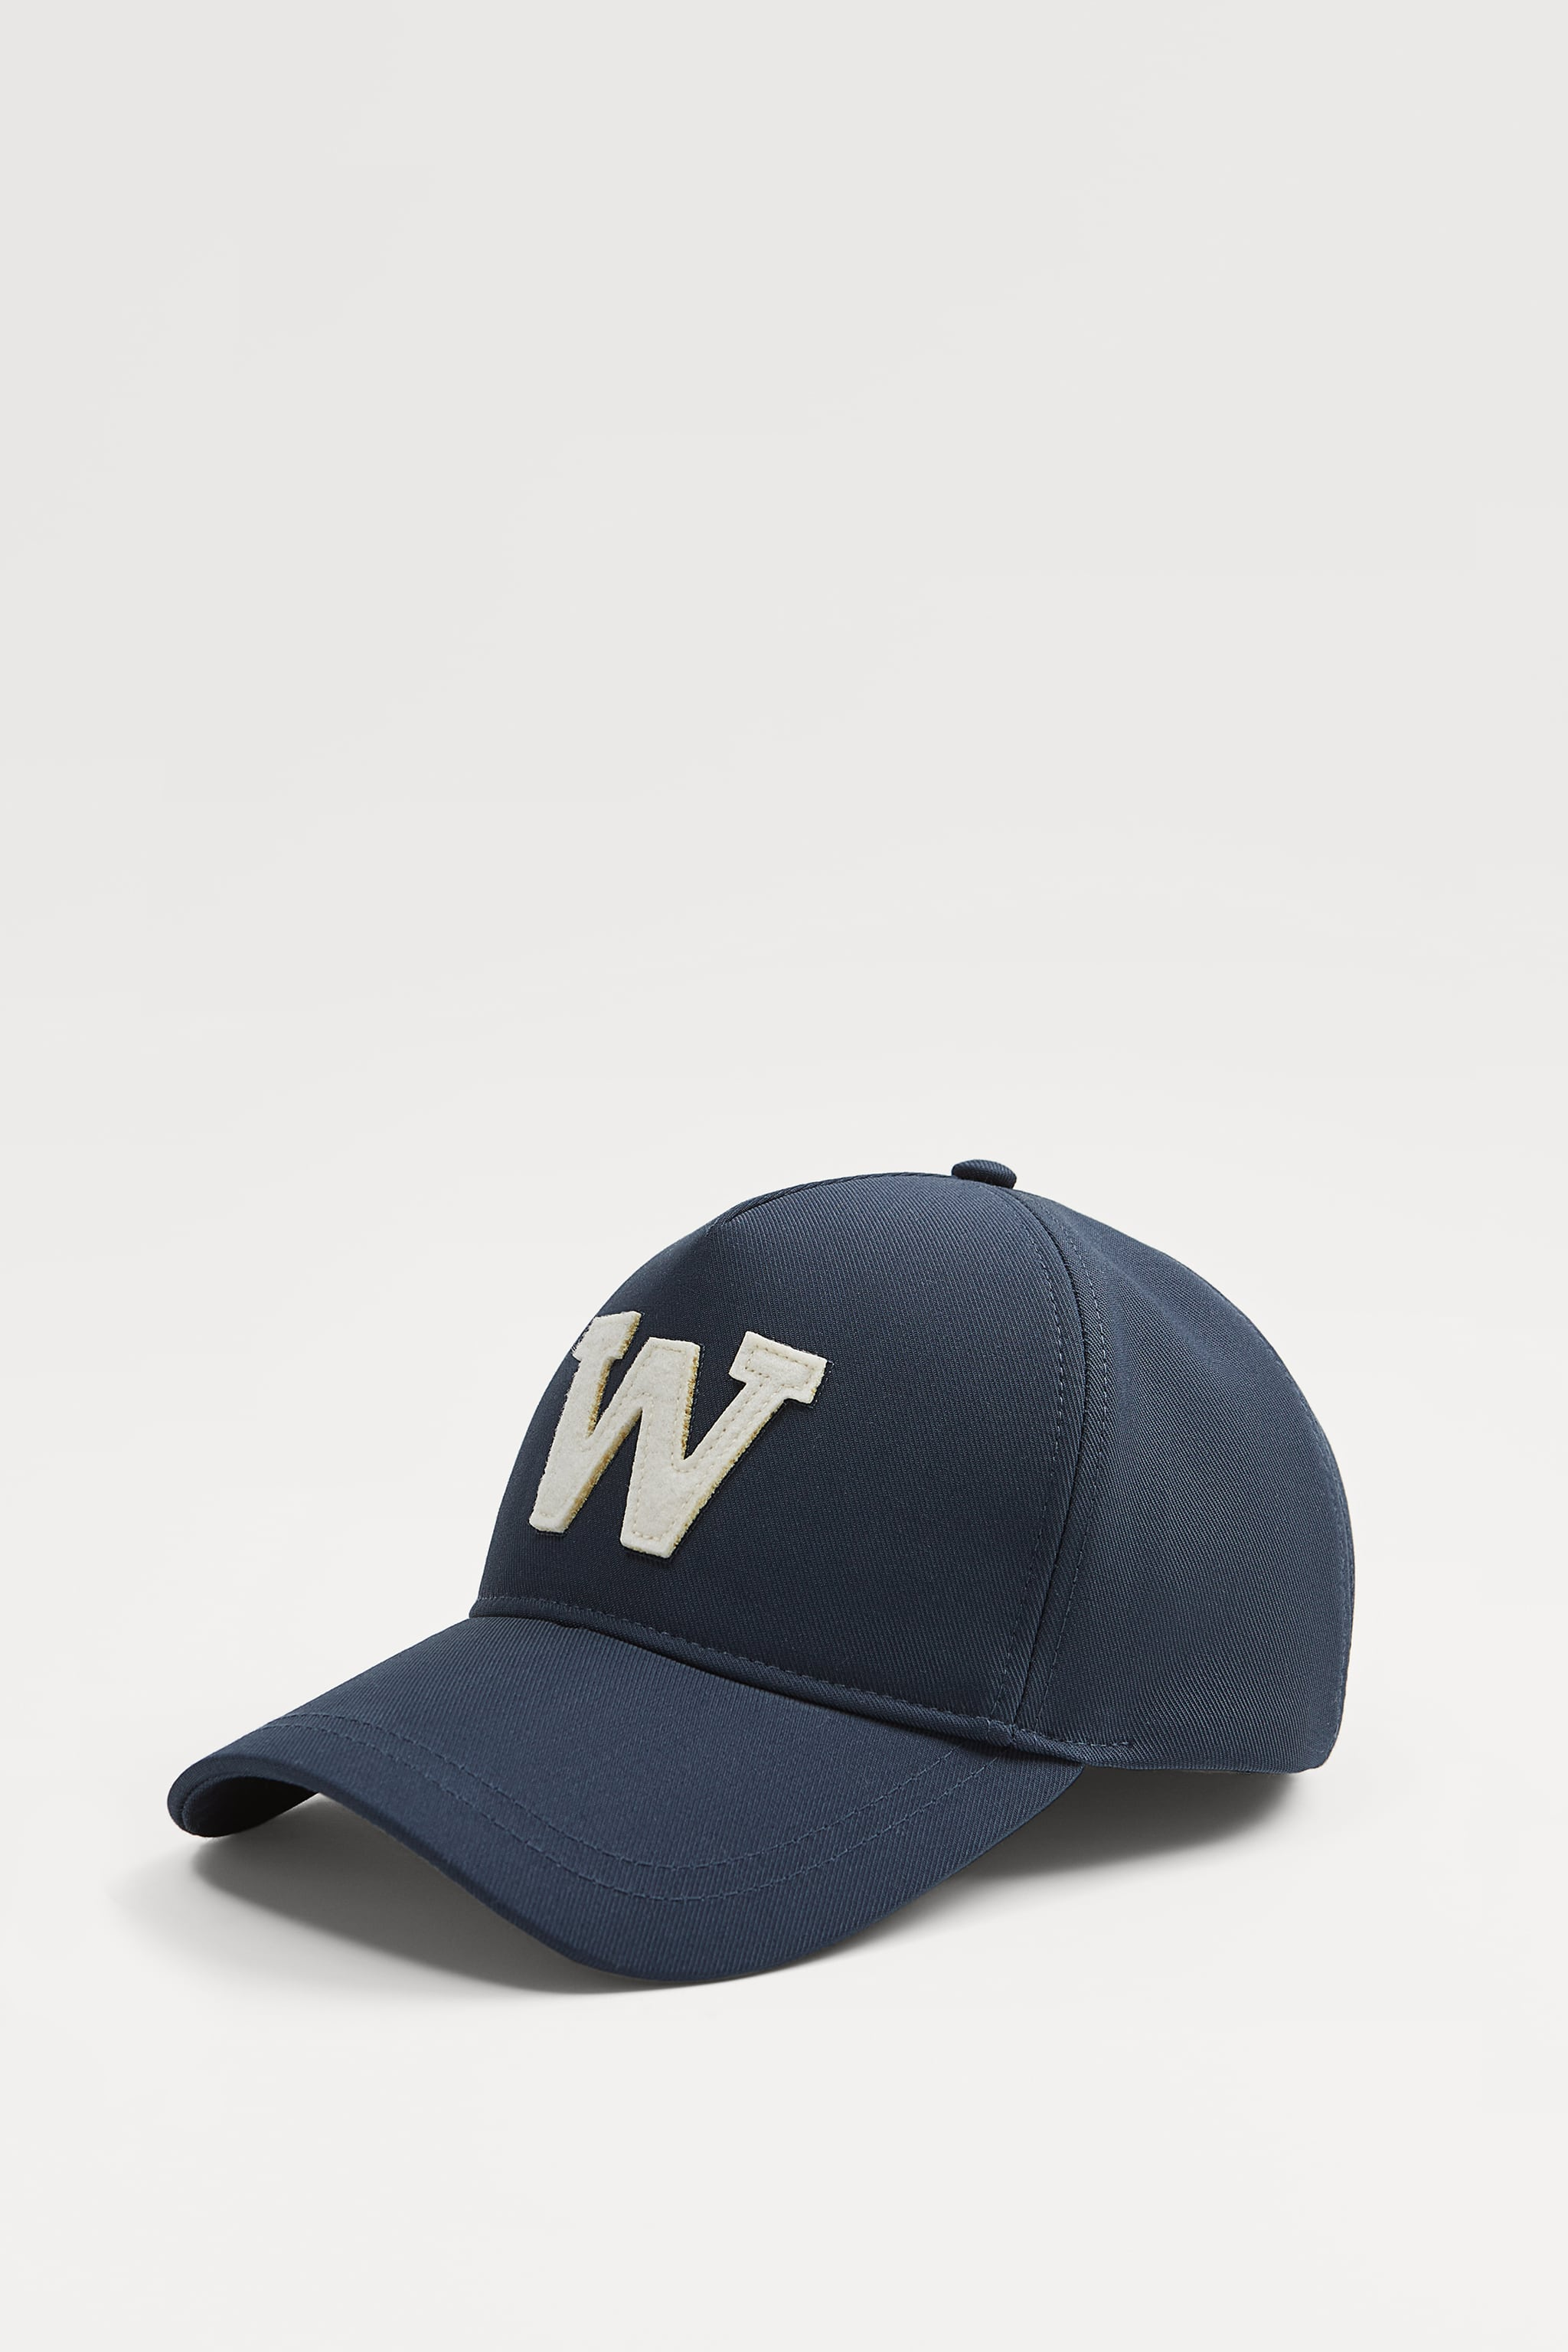 Zara EMBROIDERED LETTER CAP